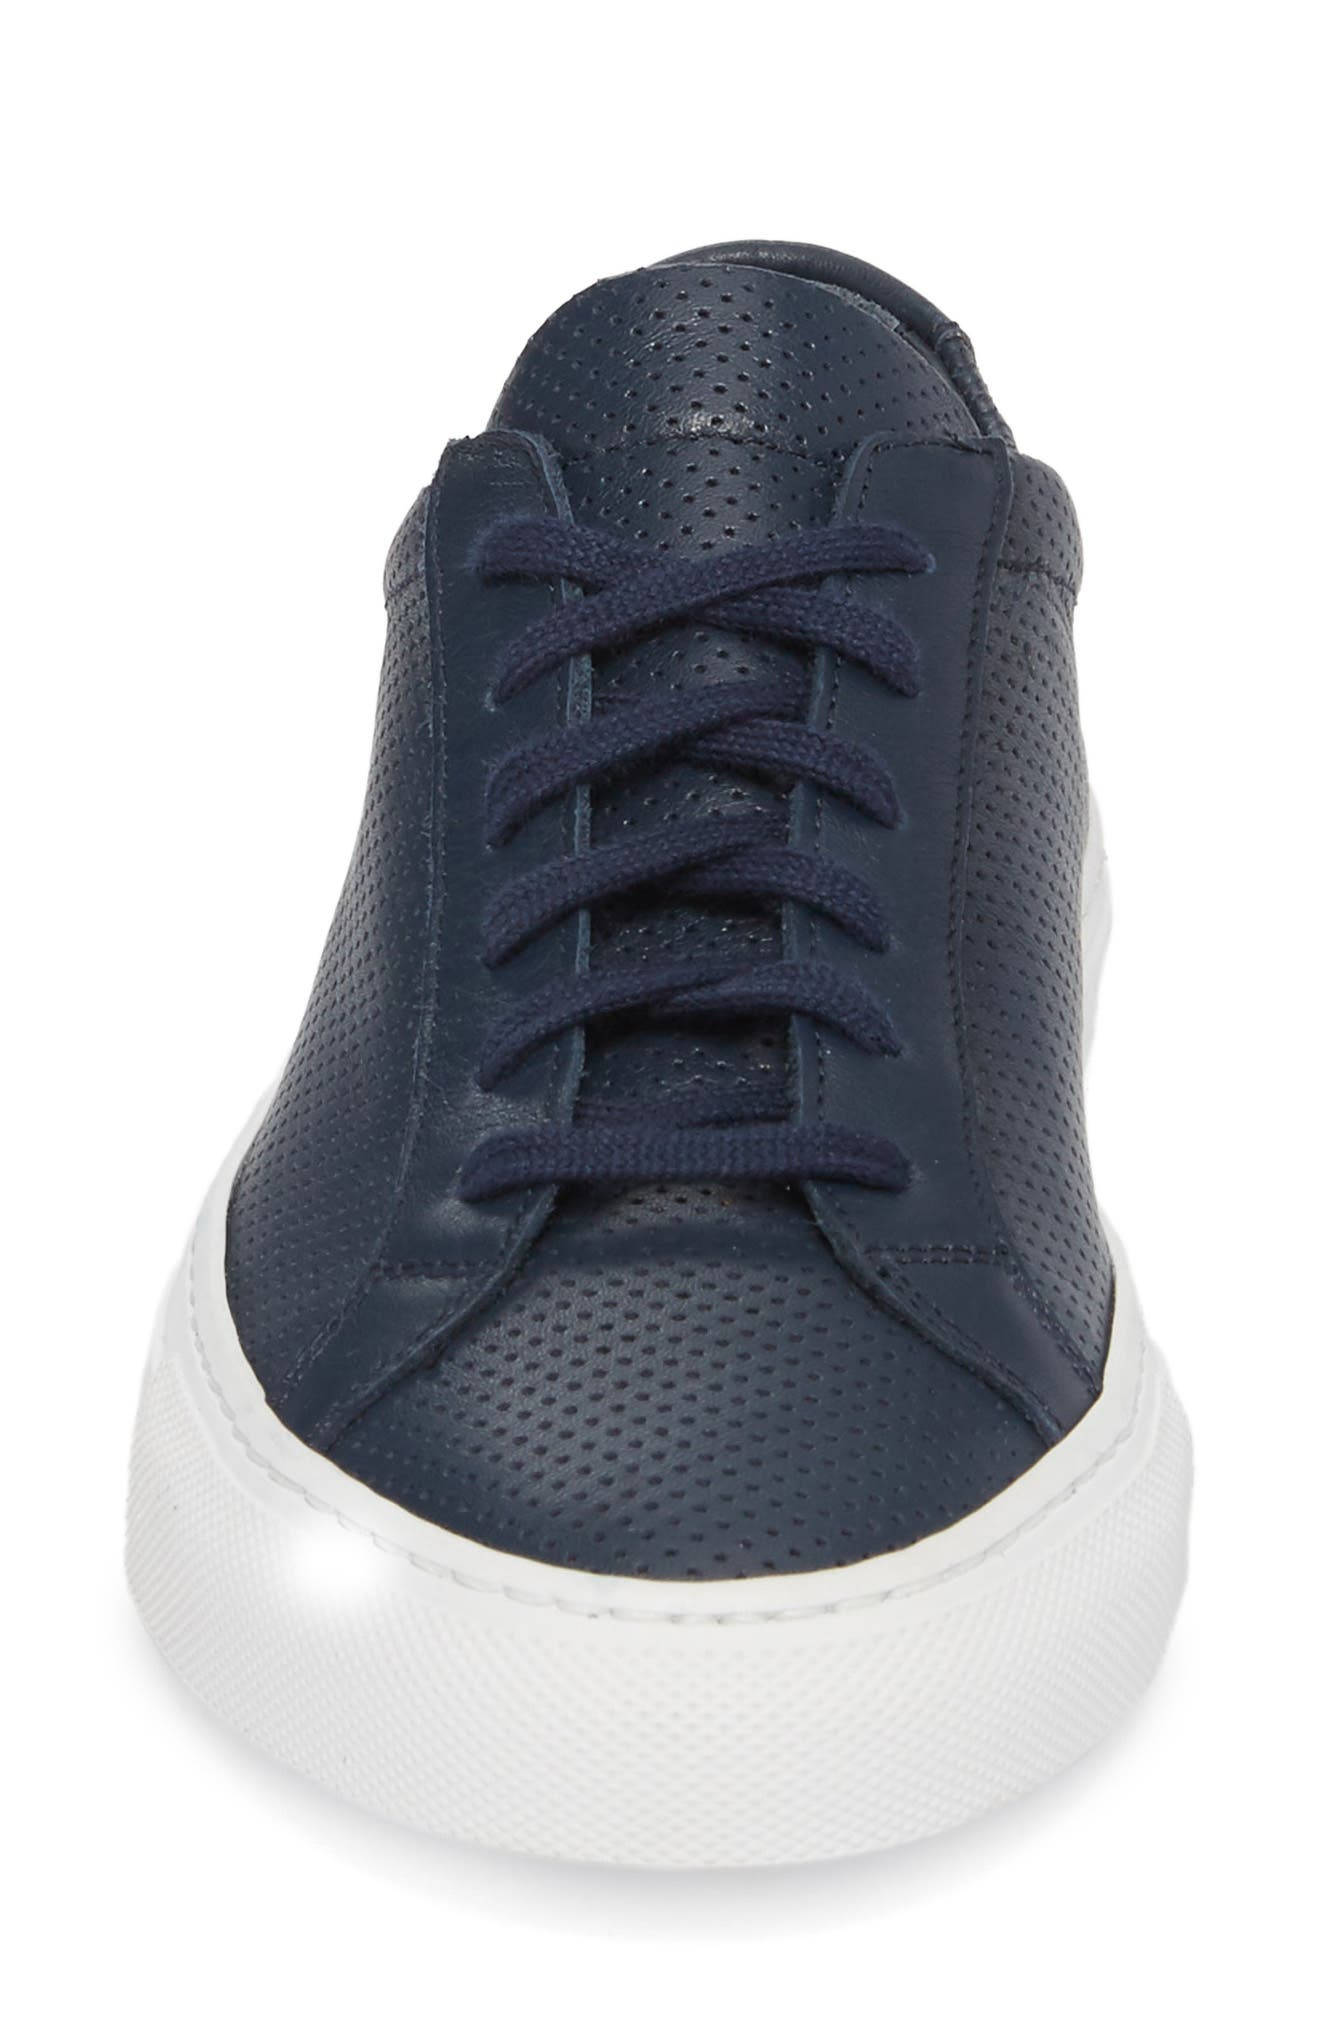 Original Achilles Perforated Low Sneaker,                             Alternate thumbnail 4, color,                             400